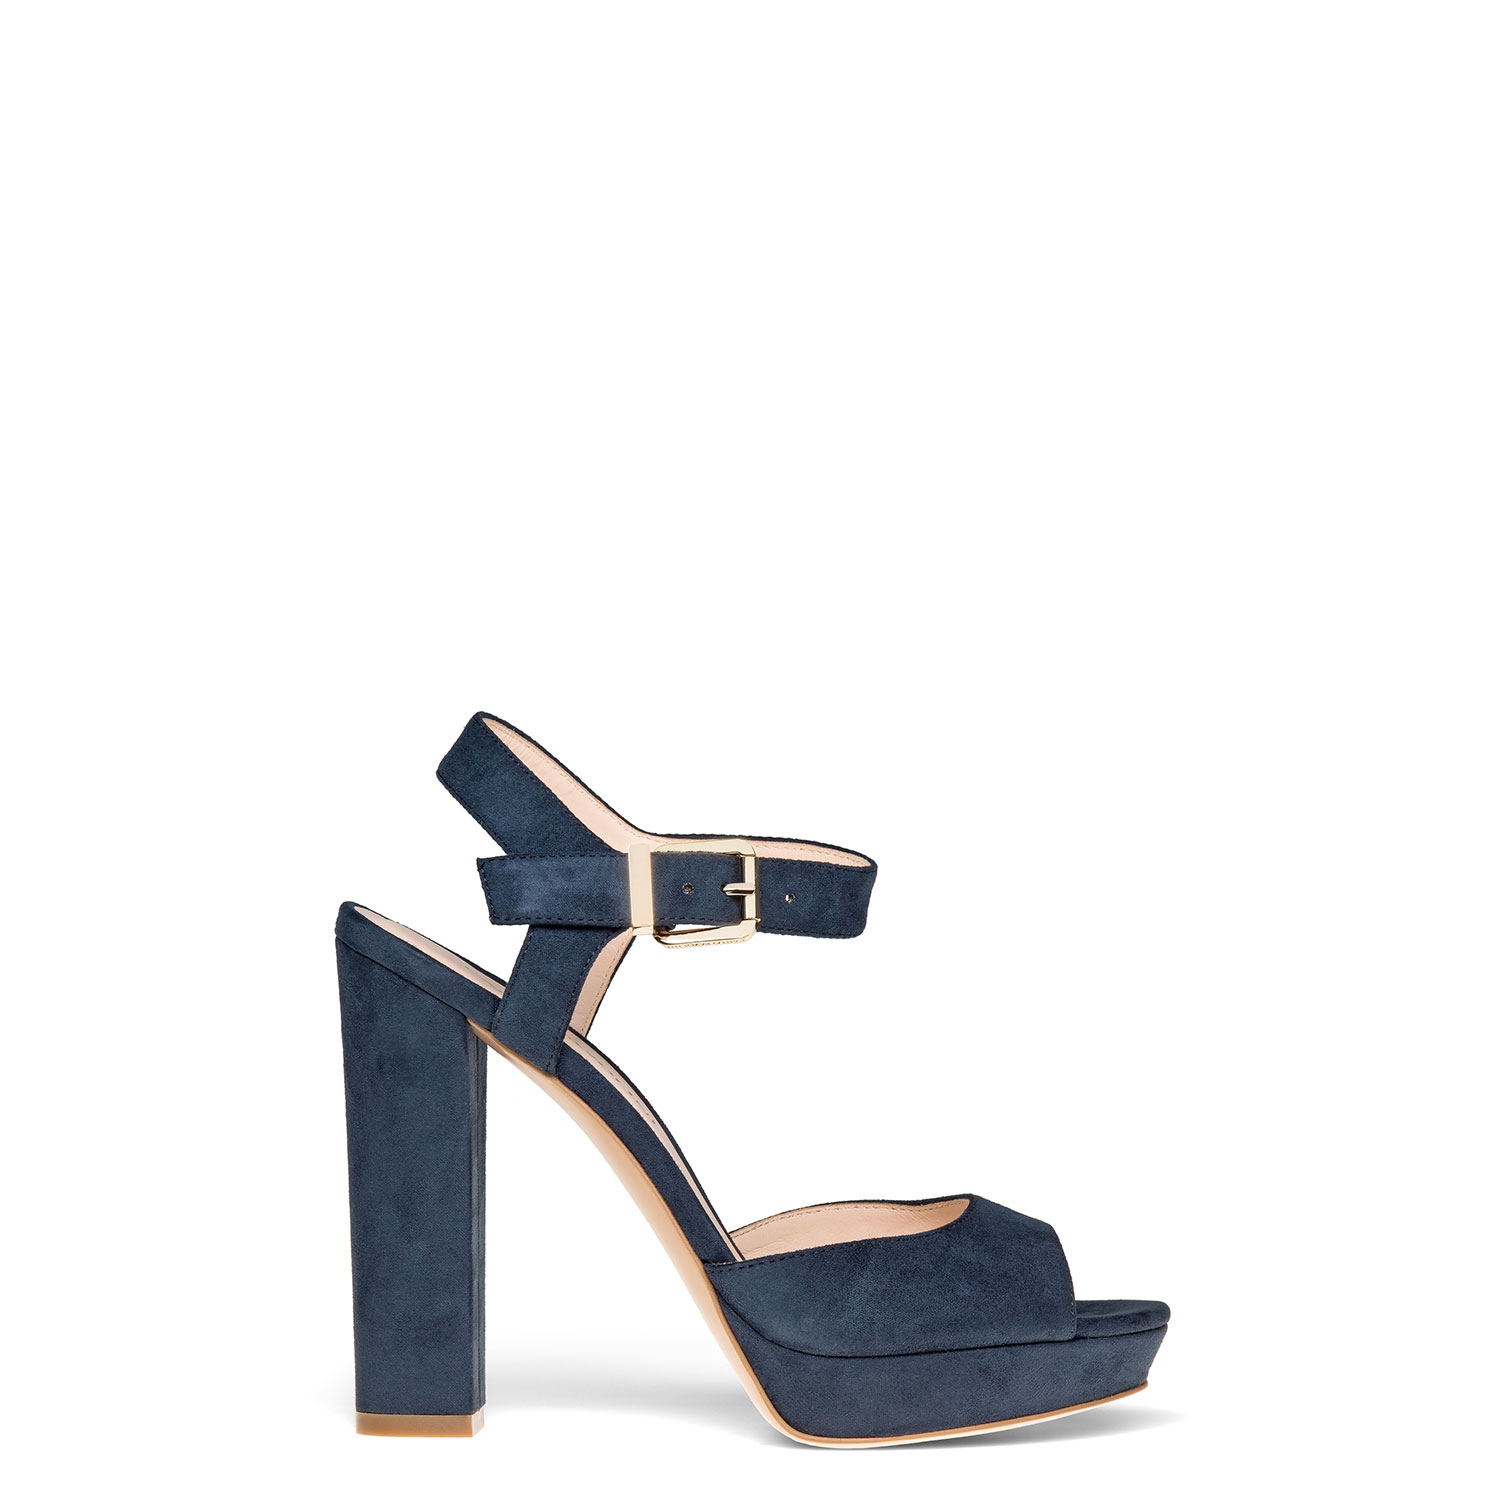 Women's sandals CARLO PAZOLINI FL-STB1-6SP